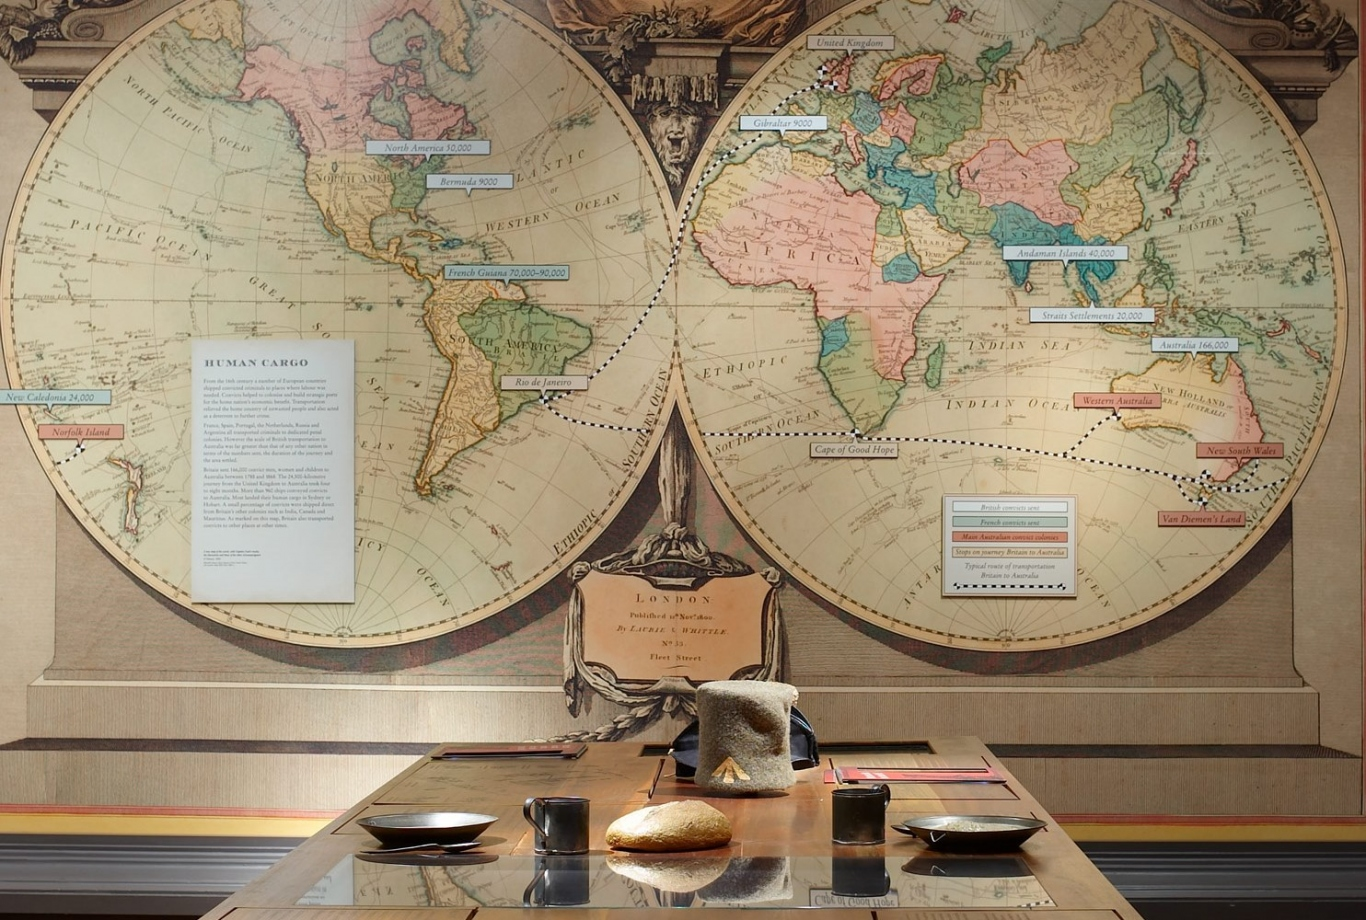 View of Convict Sydney exhibition showing table with artifacts and wall maps